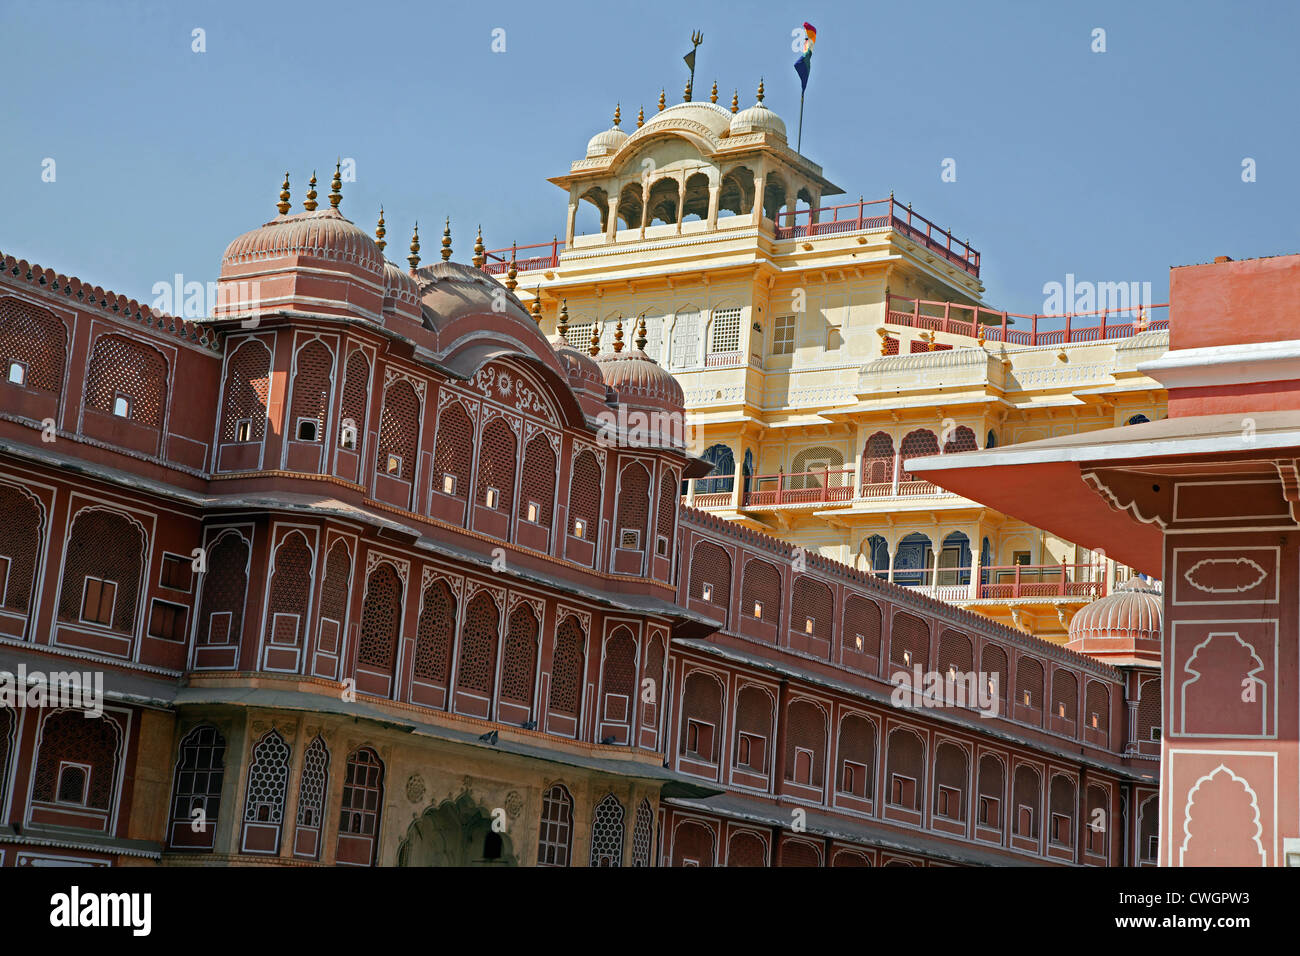 Chandra Mahal / Chandra Niwas, most commanding building in the City Palace complex, Jaipur, Rajasthan, India - Stock Image